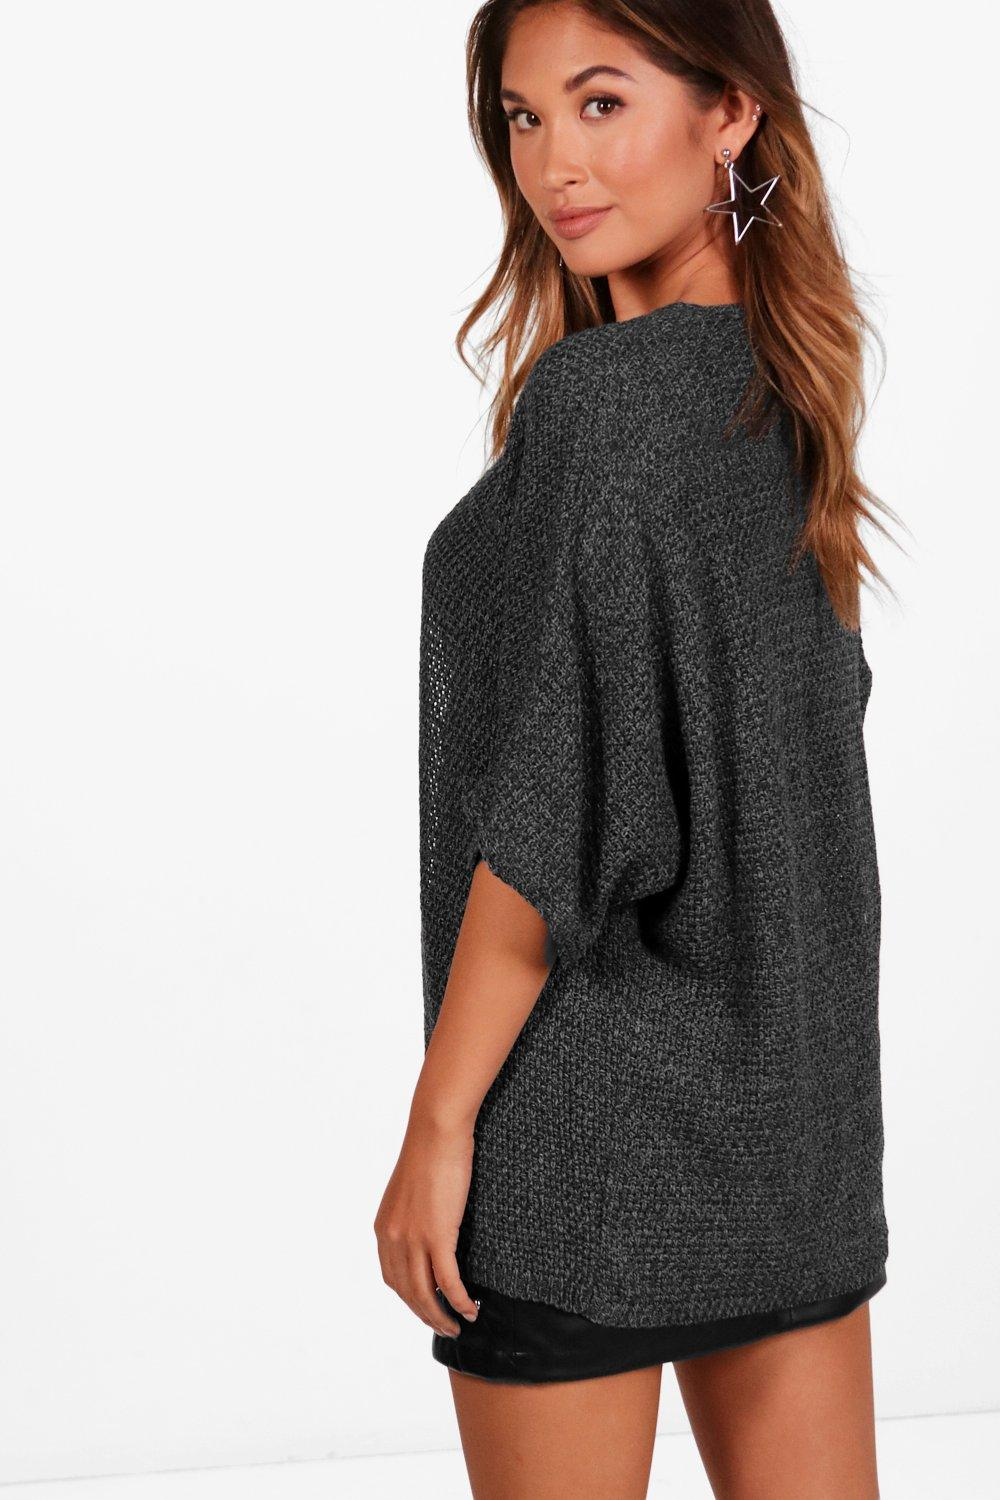 Boohoo Womens Ladies Lucy Loose Knit Batwing Cardigan